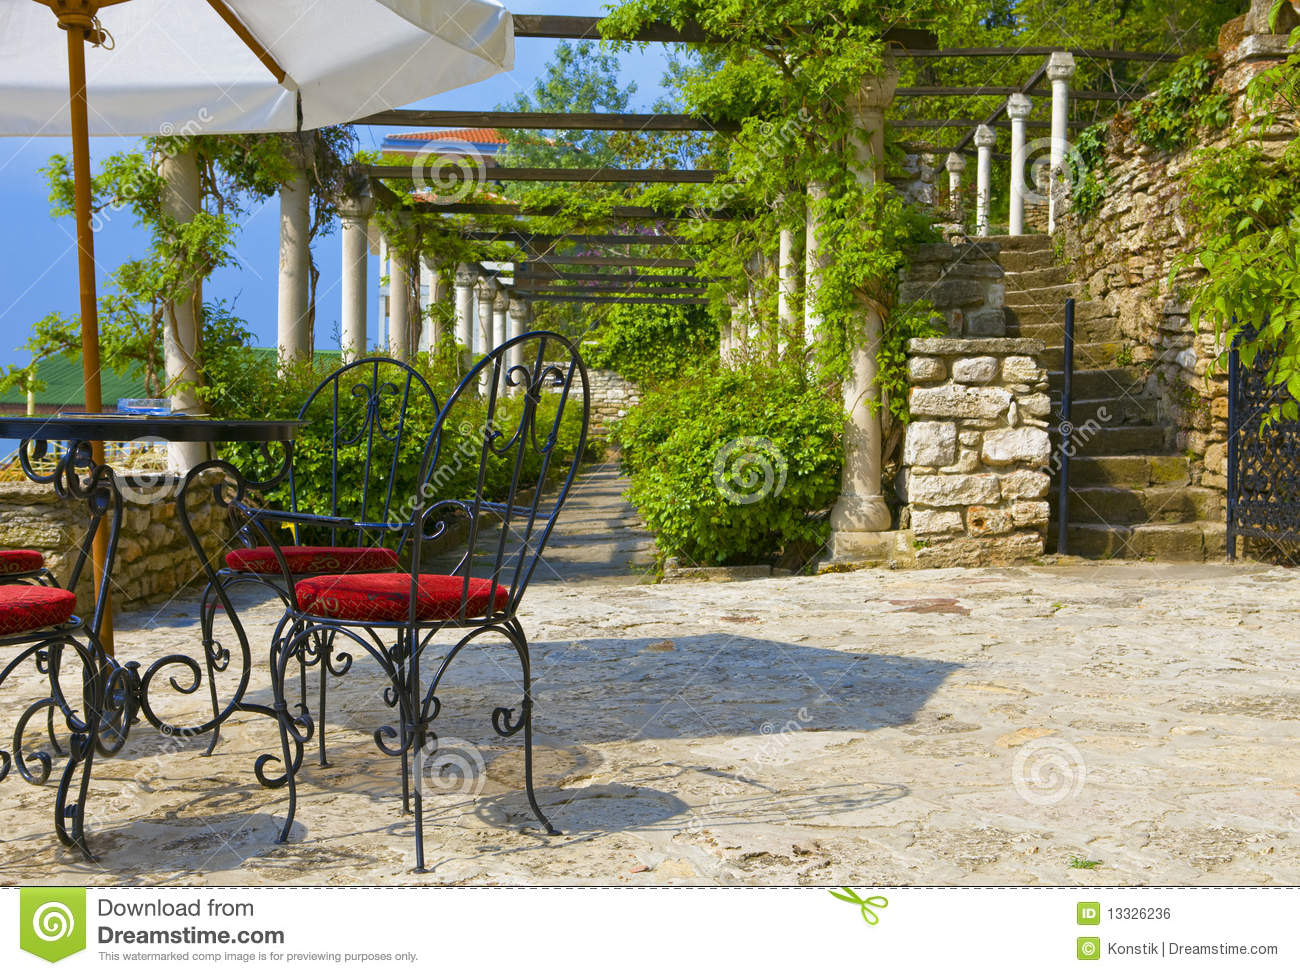 Cafe En Plein Air Sur Winded Autour De La Terrasse Verte Photo Stock